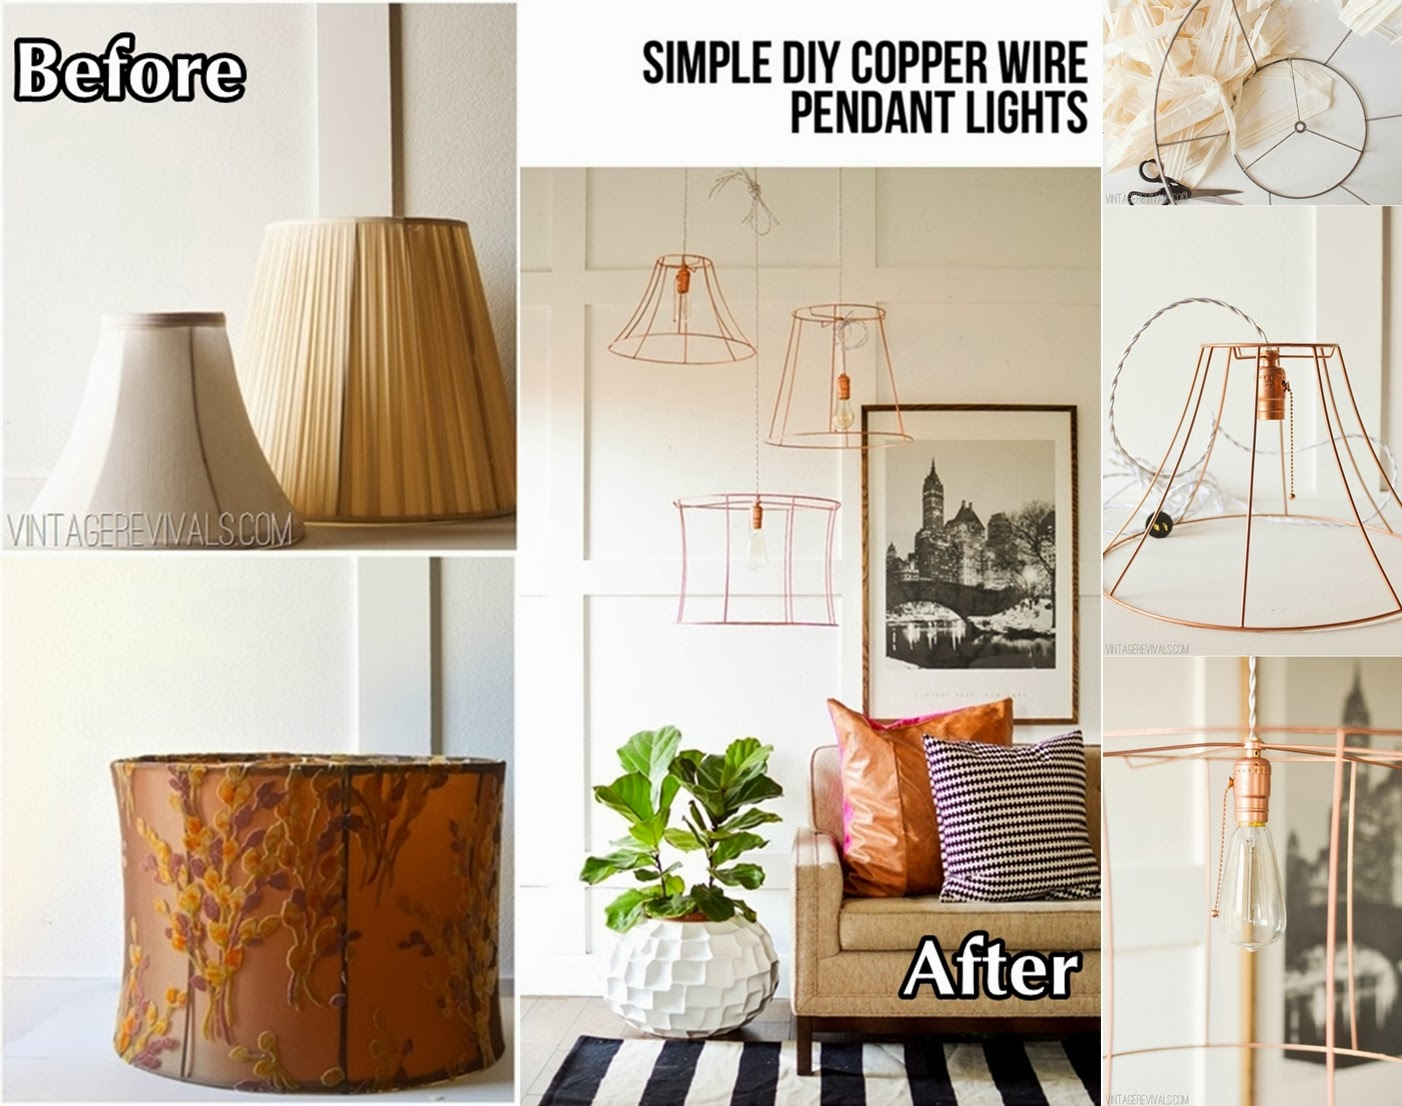 Upcycled copper wire pendant lights from lampshades diy craft projects upcycled copper wire pendant lights from lampshades keyboard keysfo Image collections